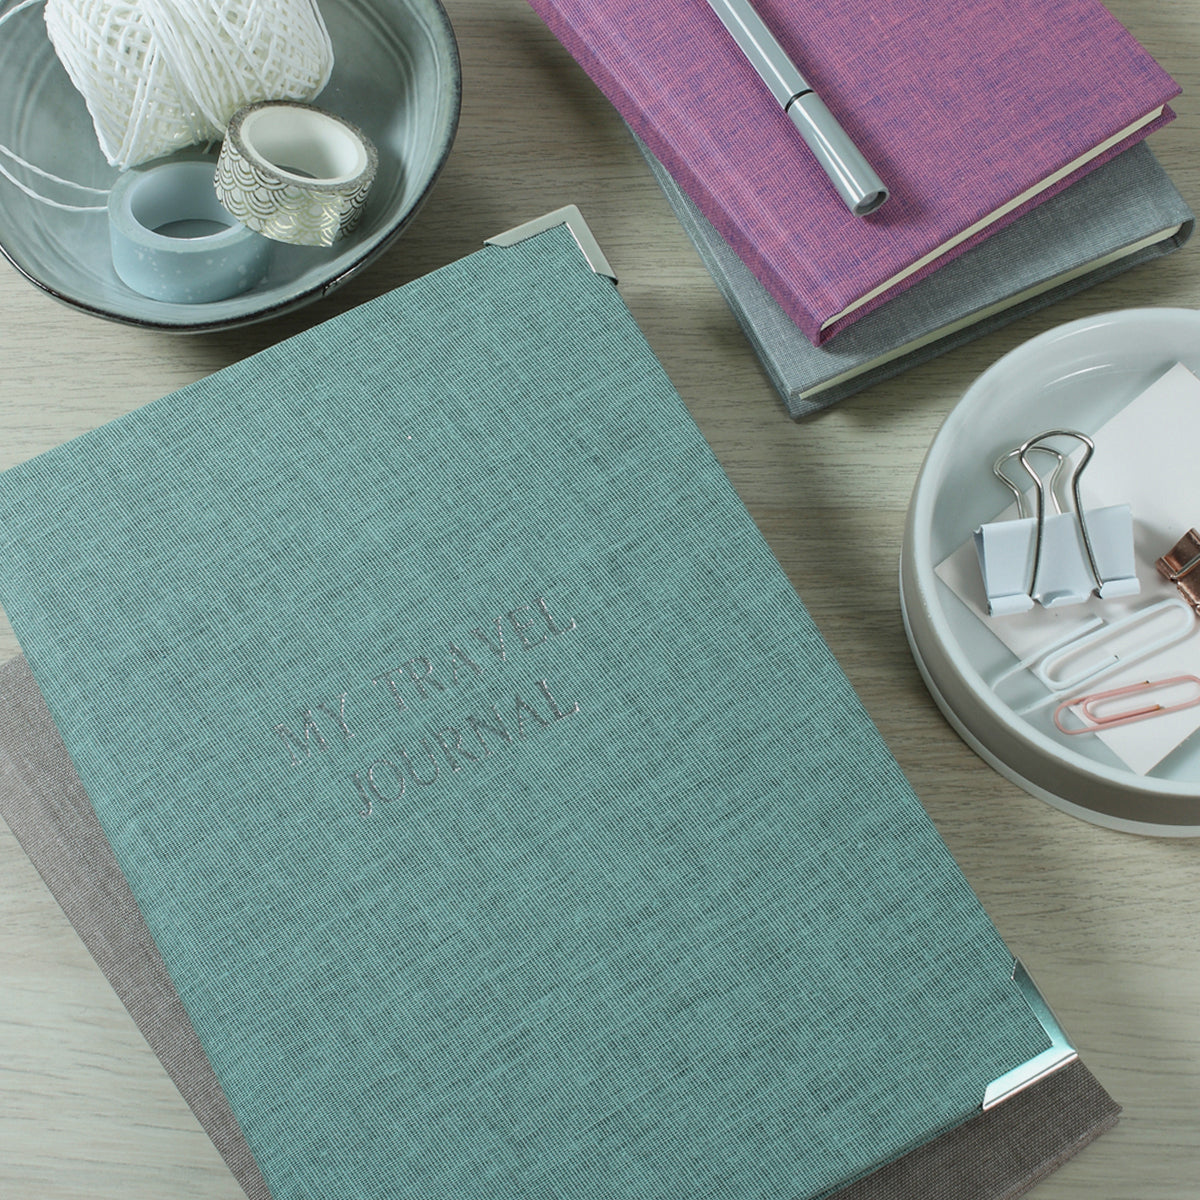 A Harris & Jones fabric journal with corner protectors.